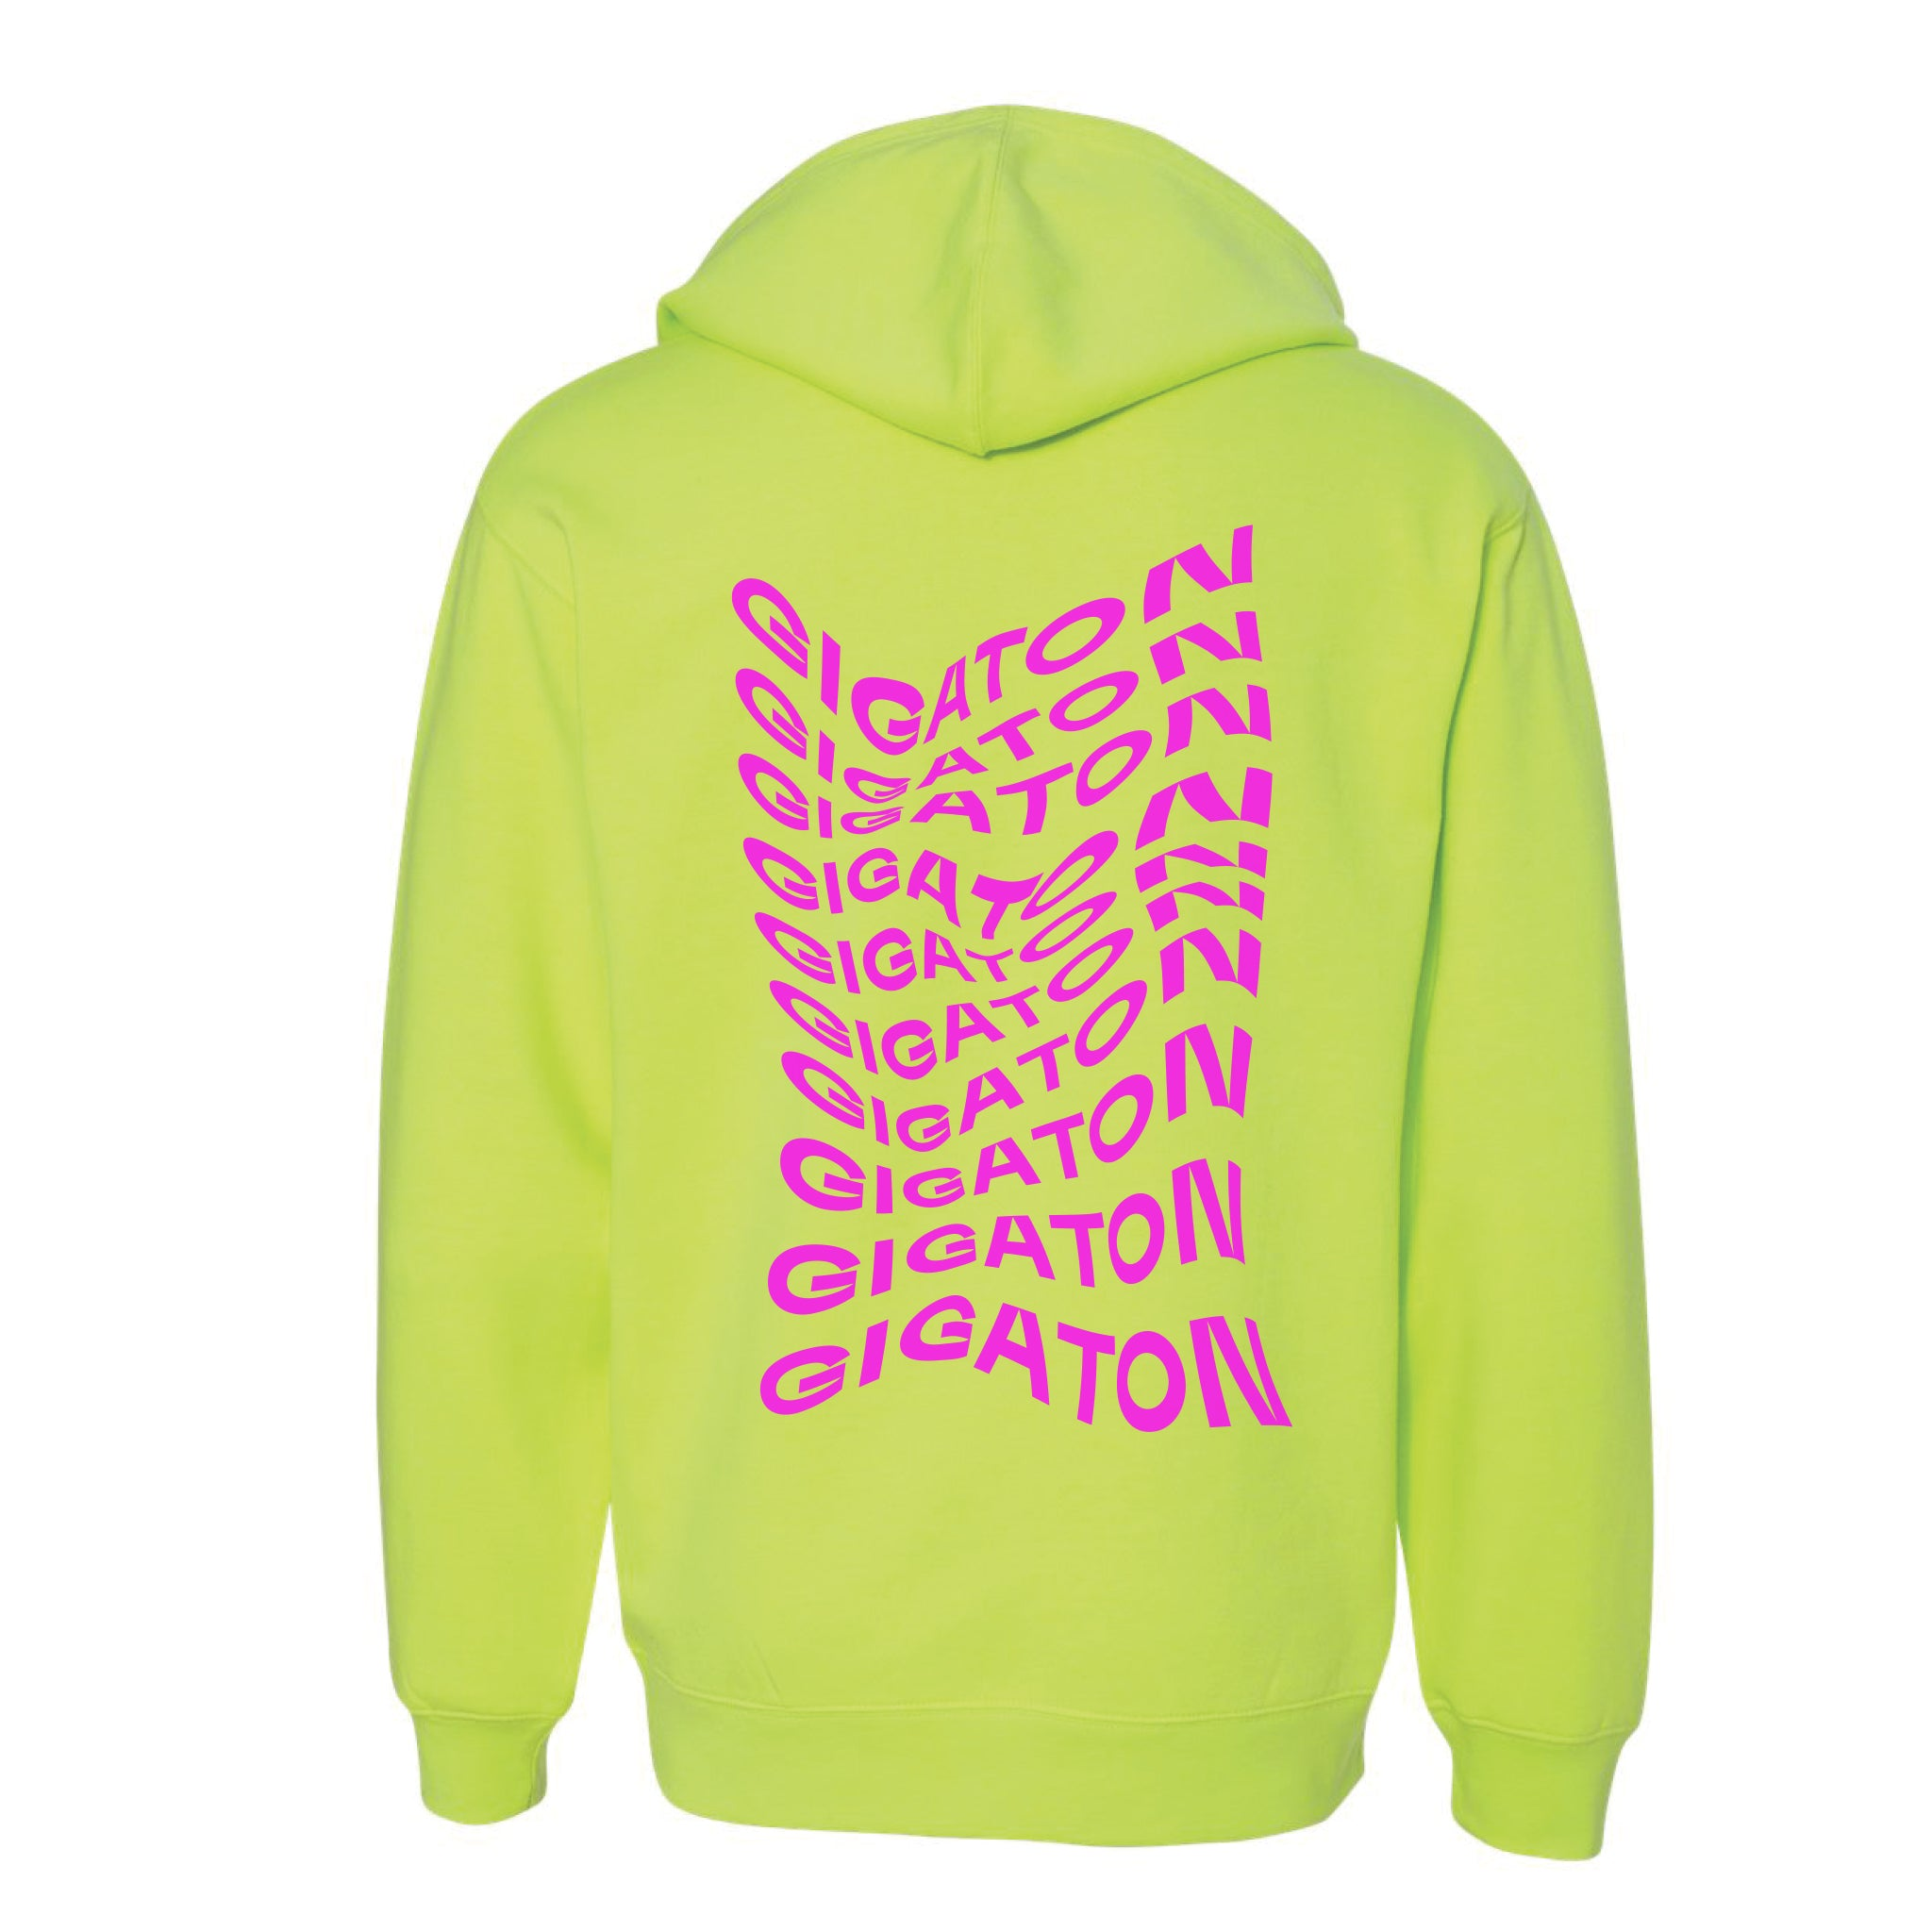 10 GIGATON HOODIE - SAFETY YELLOW